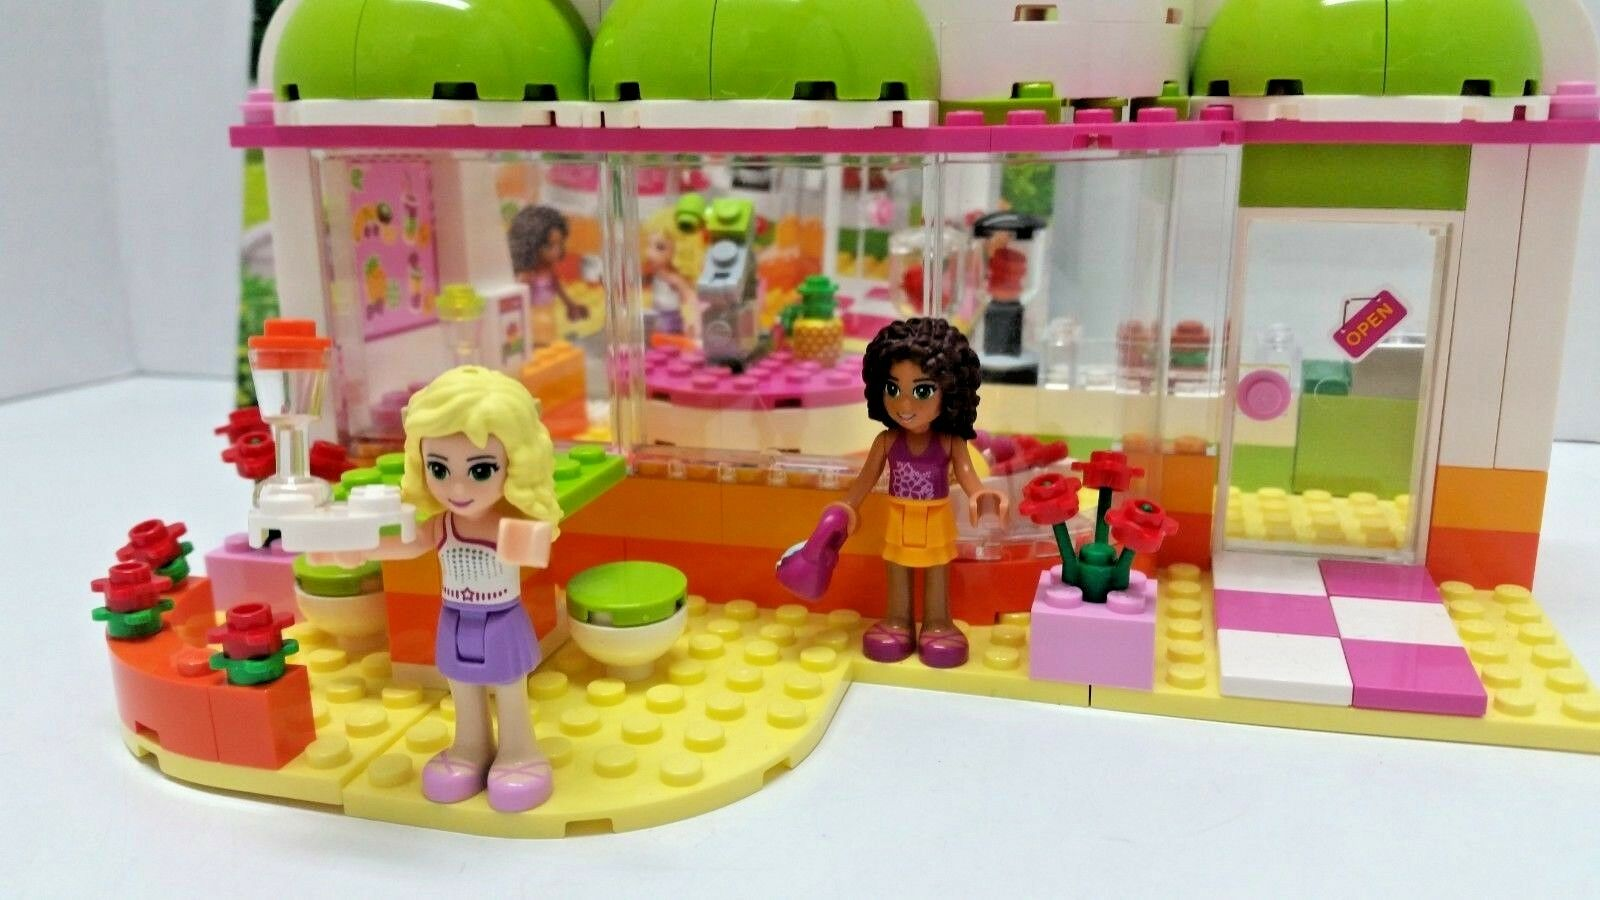 LEGO FRIENDS Heartlake Juice Bar INSTRUCTIONS INSTRUCTIONS INSTRUCTIONS 100% Complete  DR df86f1